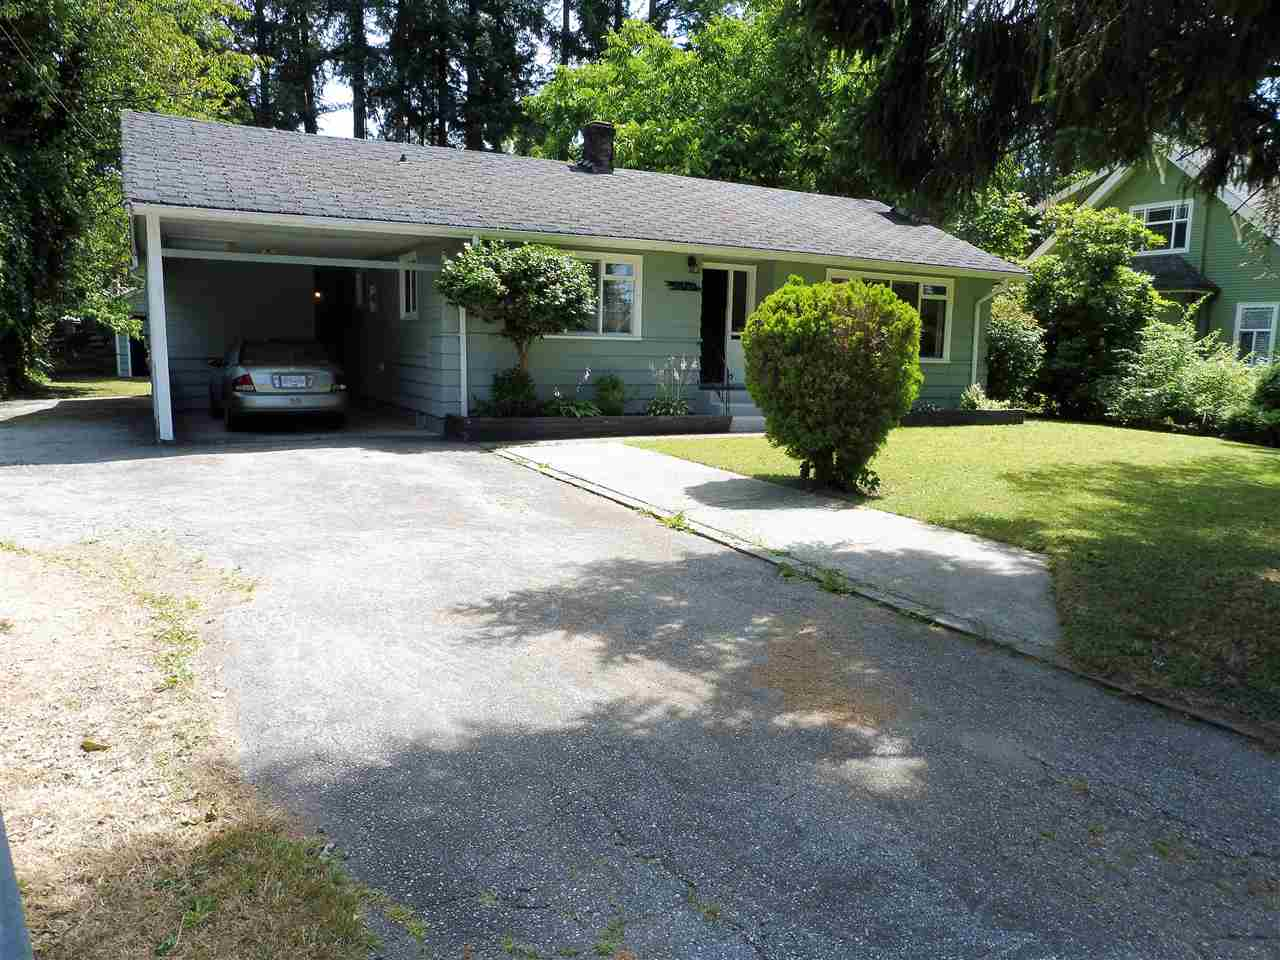 NICE BIG FLAT LOT, 10,400 SQ FT in the heart of Maple Ridge. This rancher is a great rental property or great opportunity to build your dream home. Furnace is 3 yrs old. Laminate flooring & carpeting in the bedrooms. Wood fireplace. Close to Glenwood Elementary, Shopping, Transit, Parks and much more. Single carport. Old style detached garage and shop behind the house with 220 wiring. Very clean!